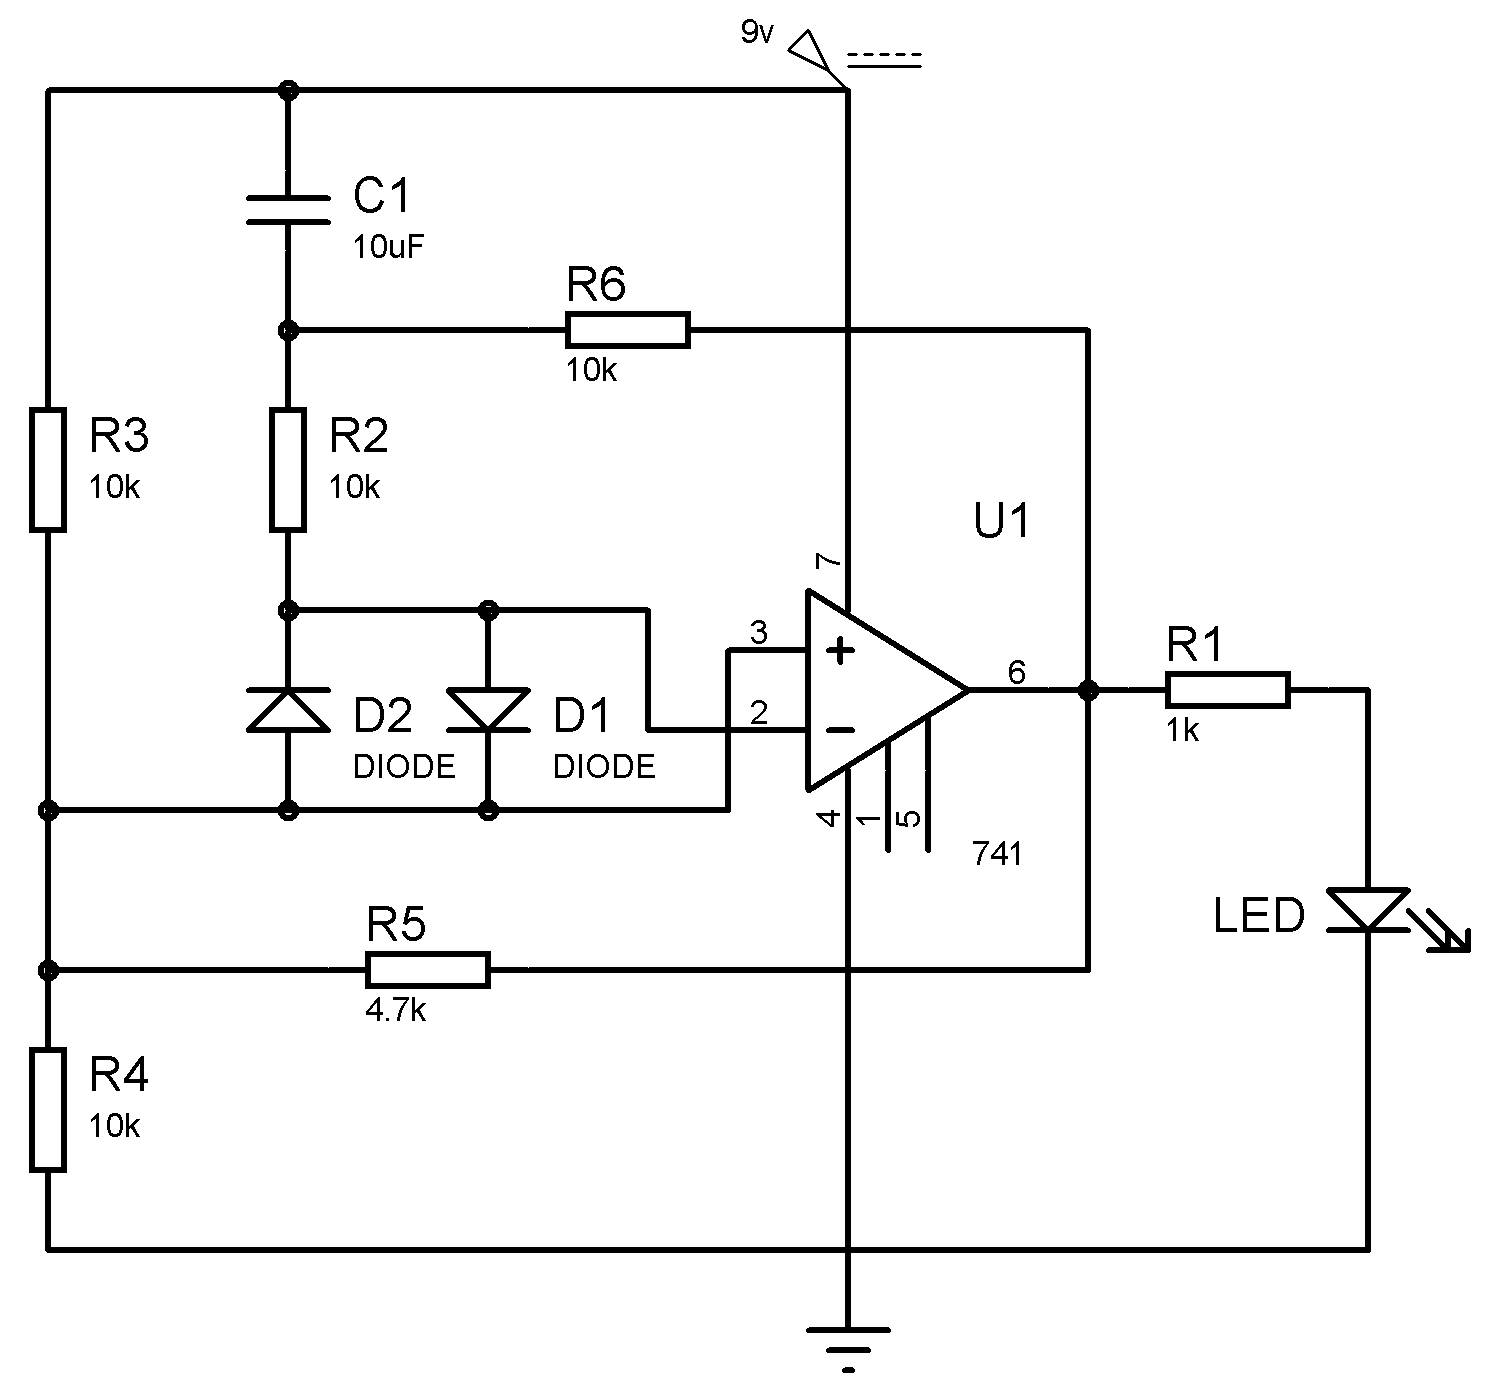 opamp tester circuit diagram op amp ic lm741 tester circuit diagram ic schematic diagram at couponss.co